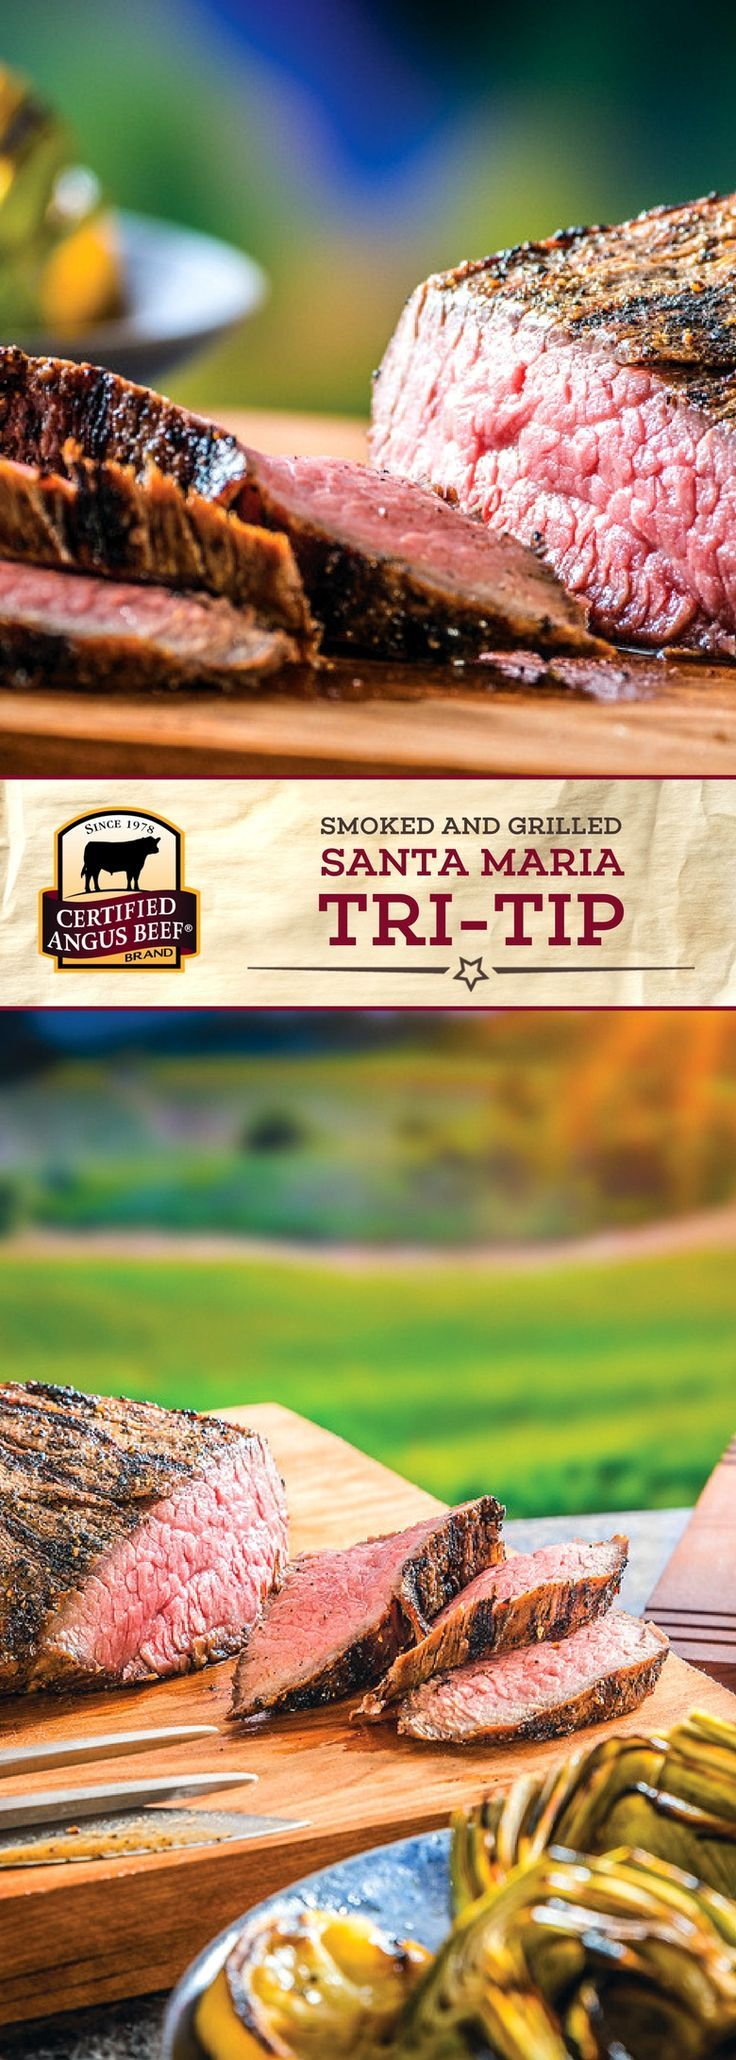 Certified Angus Beef®️️️ brand Smoked and Grilled Santa Maria Tri-Tip, made with the BEST tri-tip roast, is made with a delicious rub and marinated overnight for intense flavor! The smoky, bold flavors of this roast will leave your mouth watering! #bestangusbeef #certifiedangusbeef #beefrecipe #roastrecipe